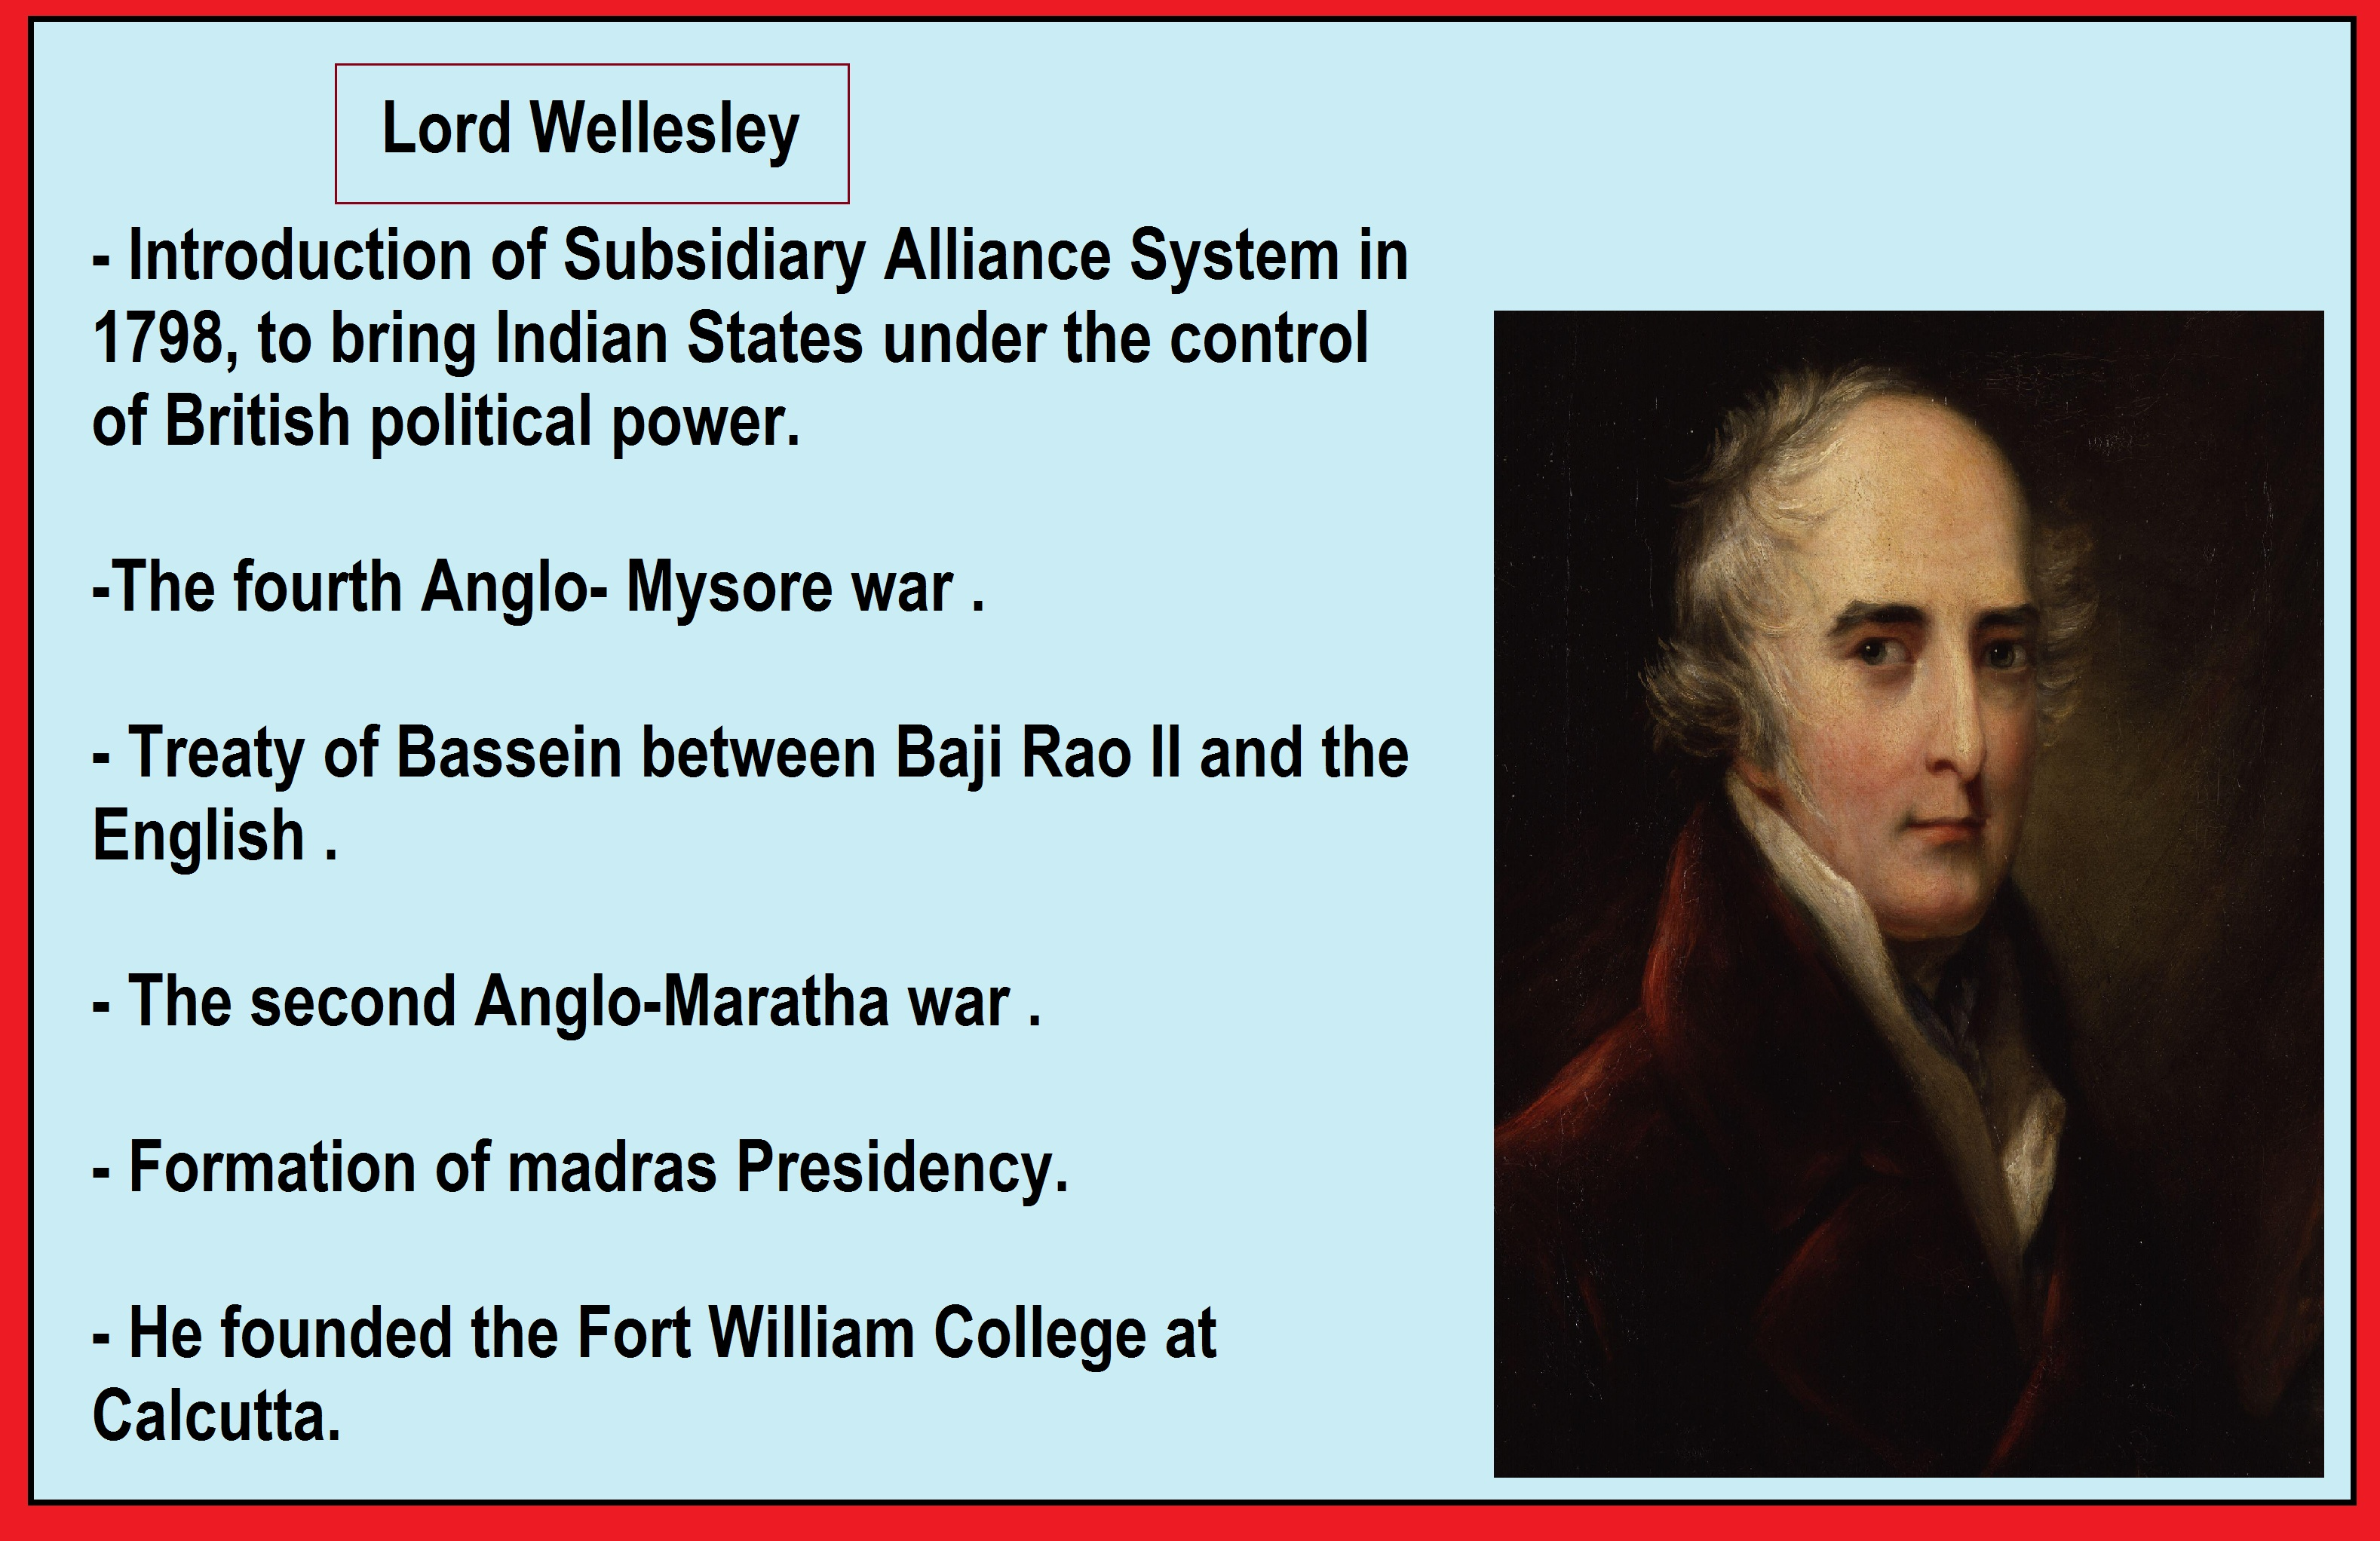 which british viceroy was related to subsidiary alliance system